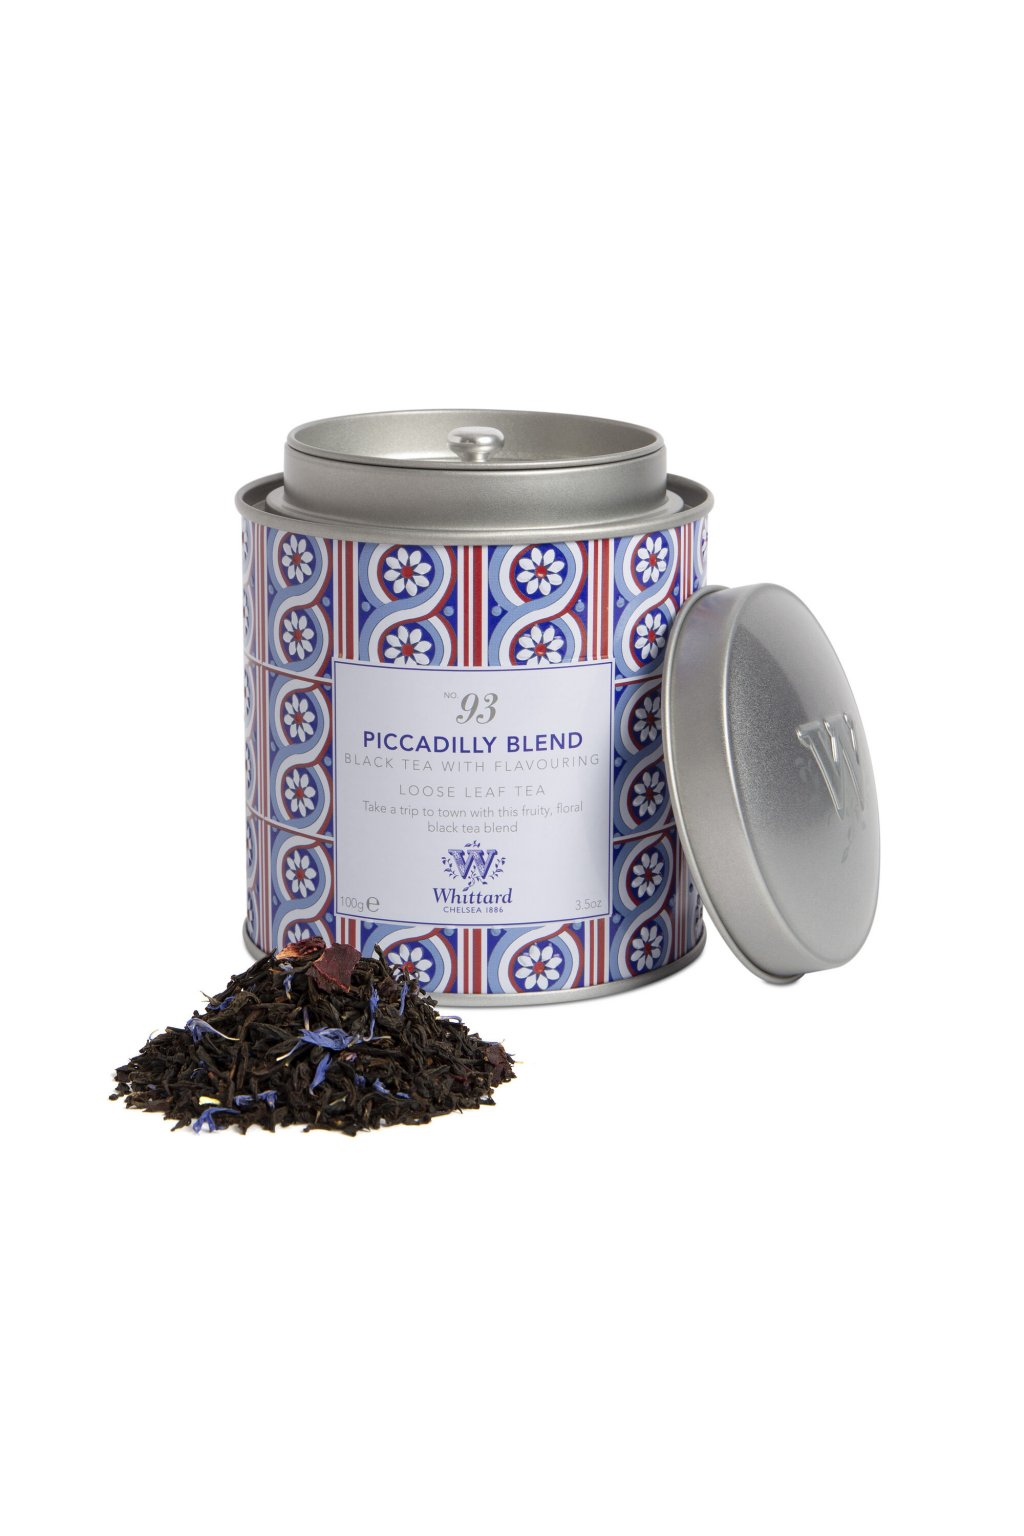 341081 Tea Discoveries Piccadilly Caddy 2